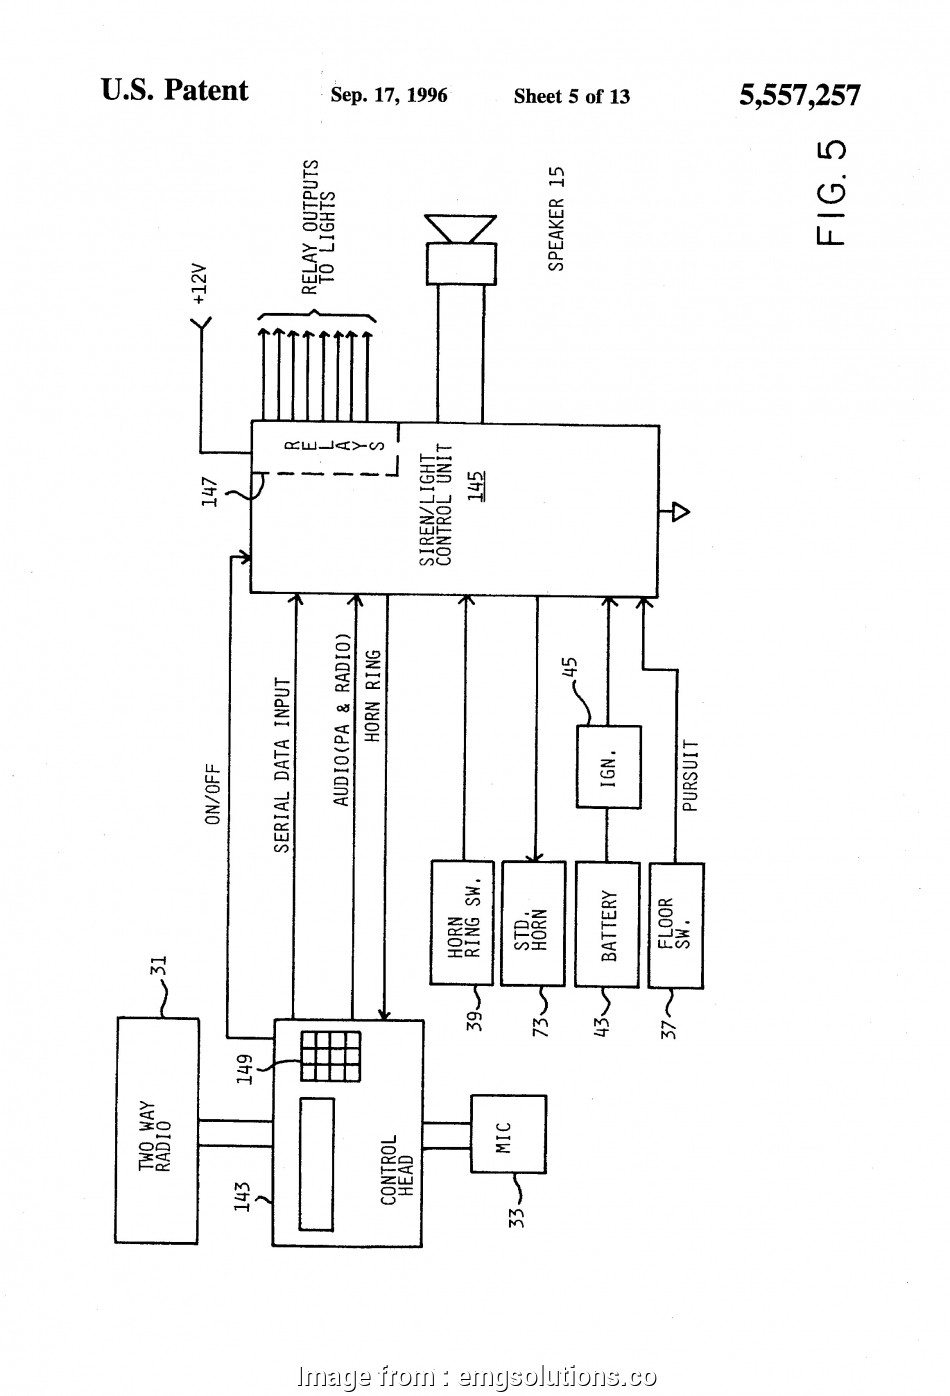 Rs422 To Rj45 Wiring Diagram Creative M9091 Rs485 Wiring